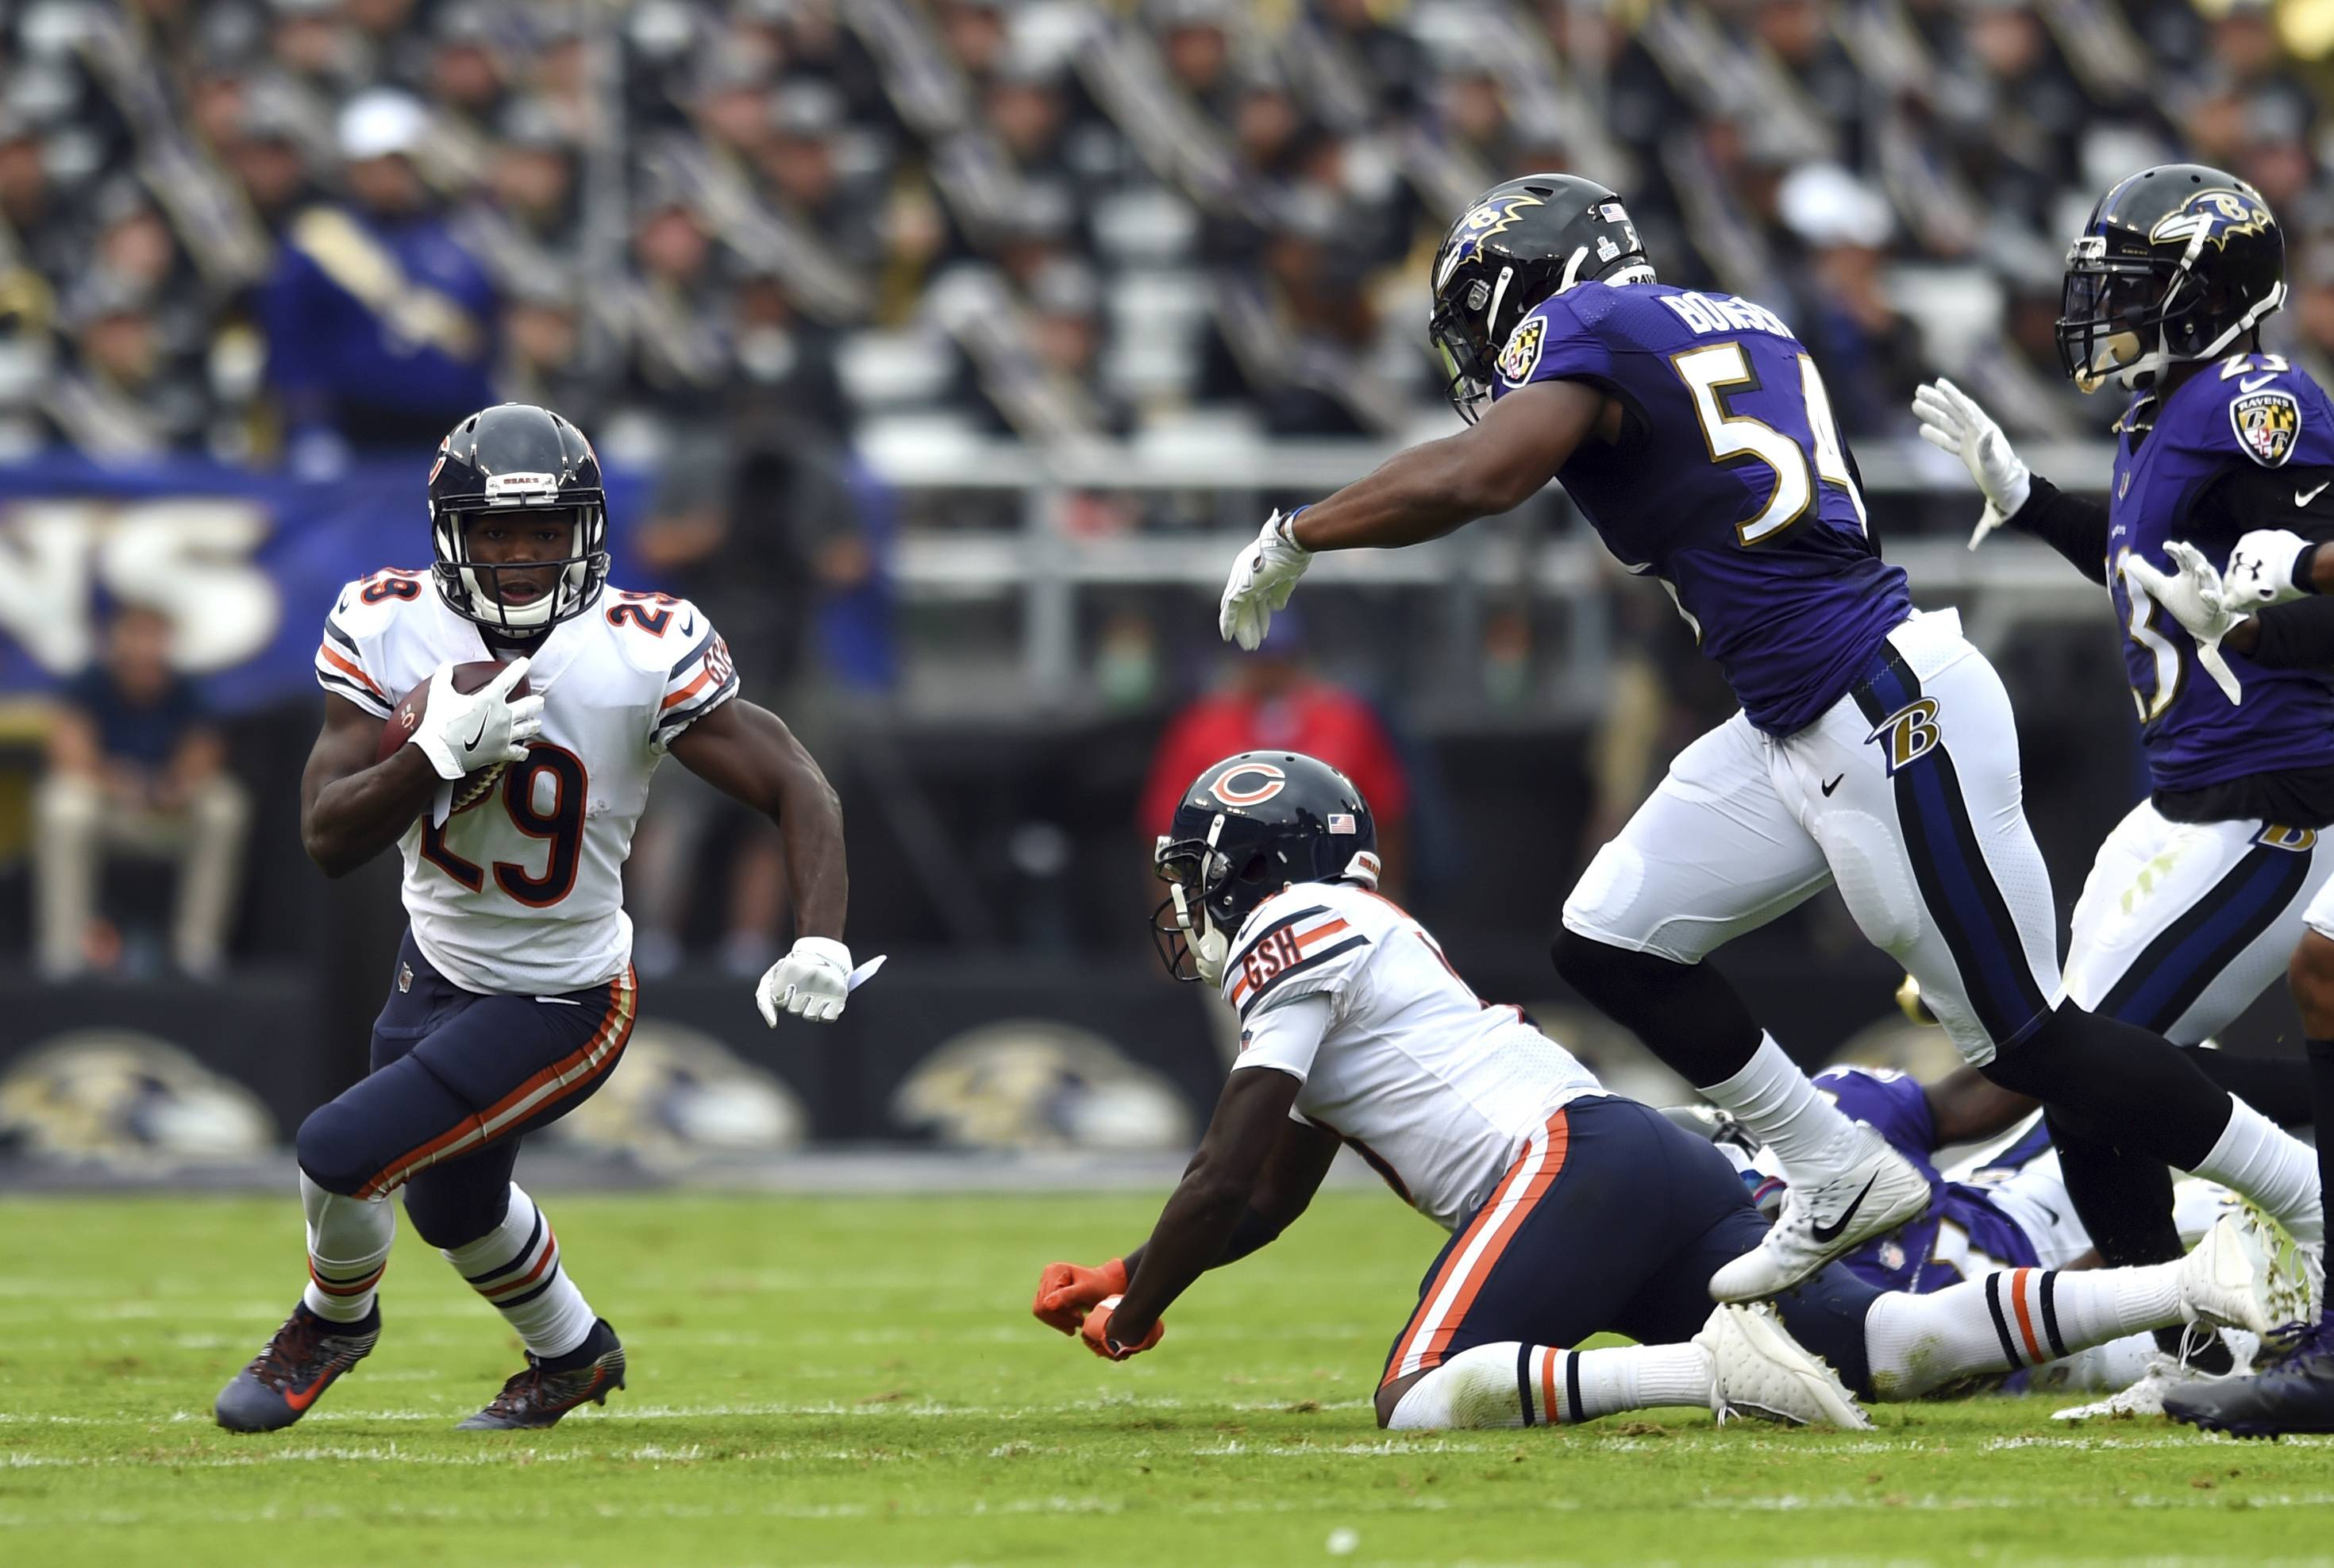 Last week against the Baltimore Ravens, the Chicago Bears ran for 231 yards. But this week they face a much stronger defense in the Carolina Panthers, who are No. 4 in total yards allowed this season.